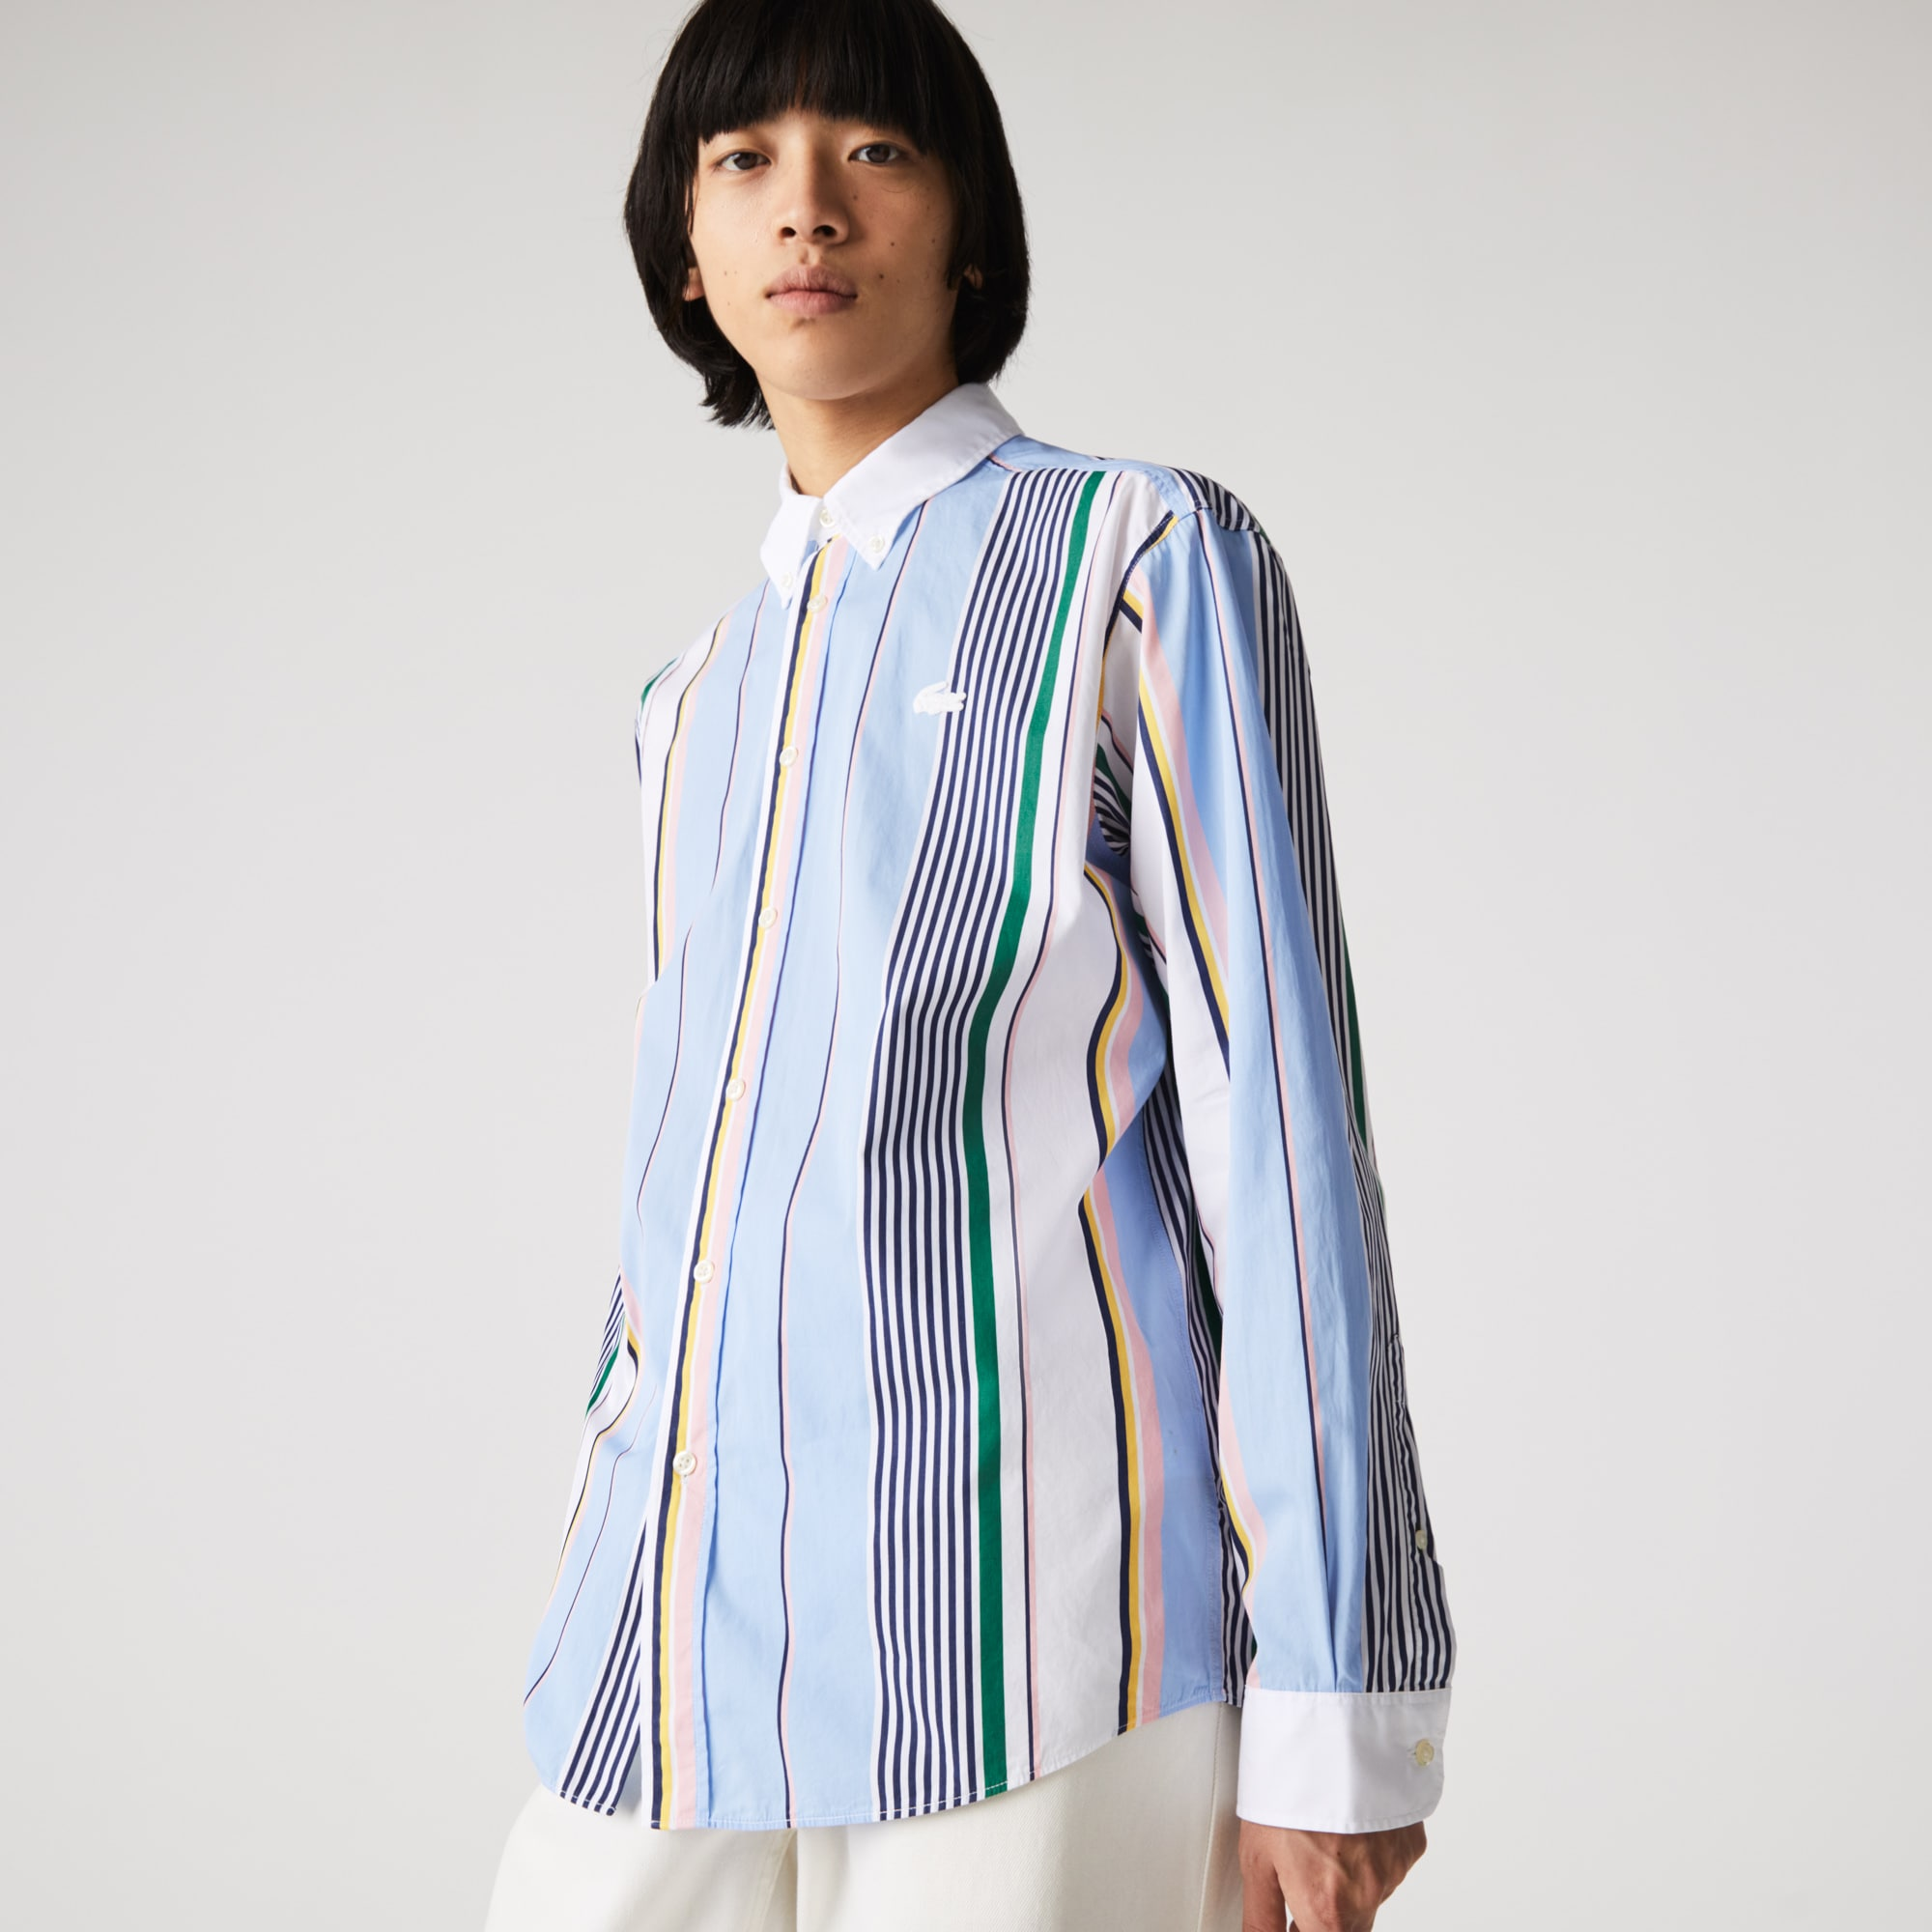 Men's 라코스테 Lacoste LIVE Relaxed Fit Striped Cotton Shirt,Blue / White WG8